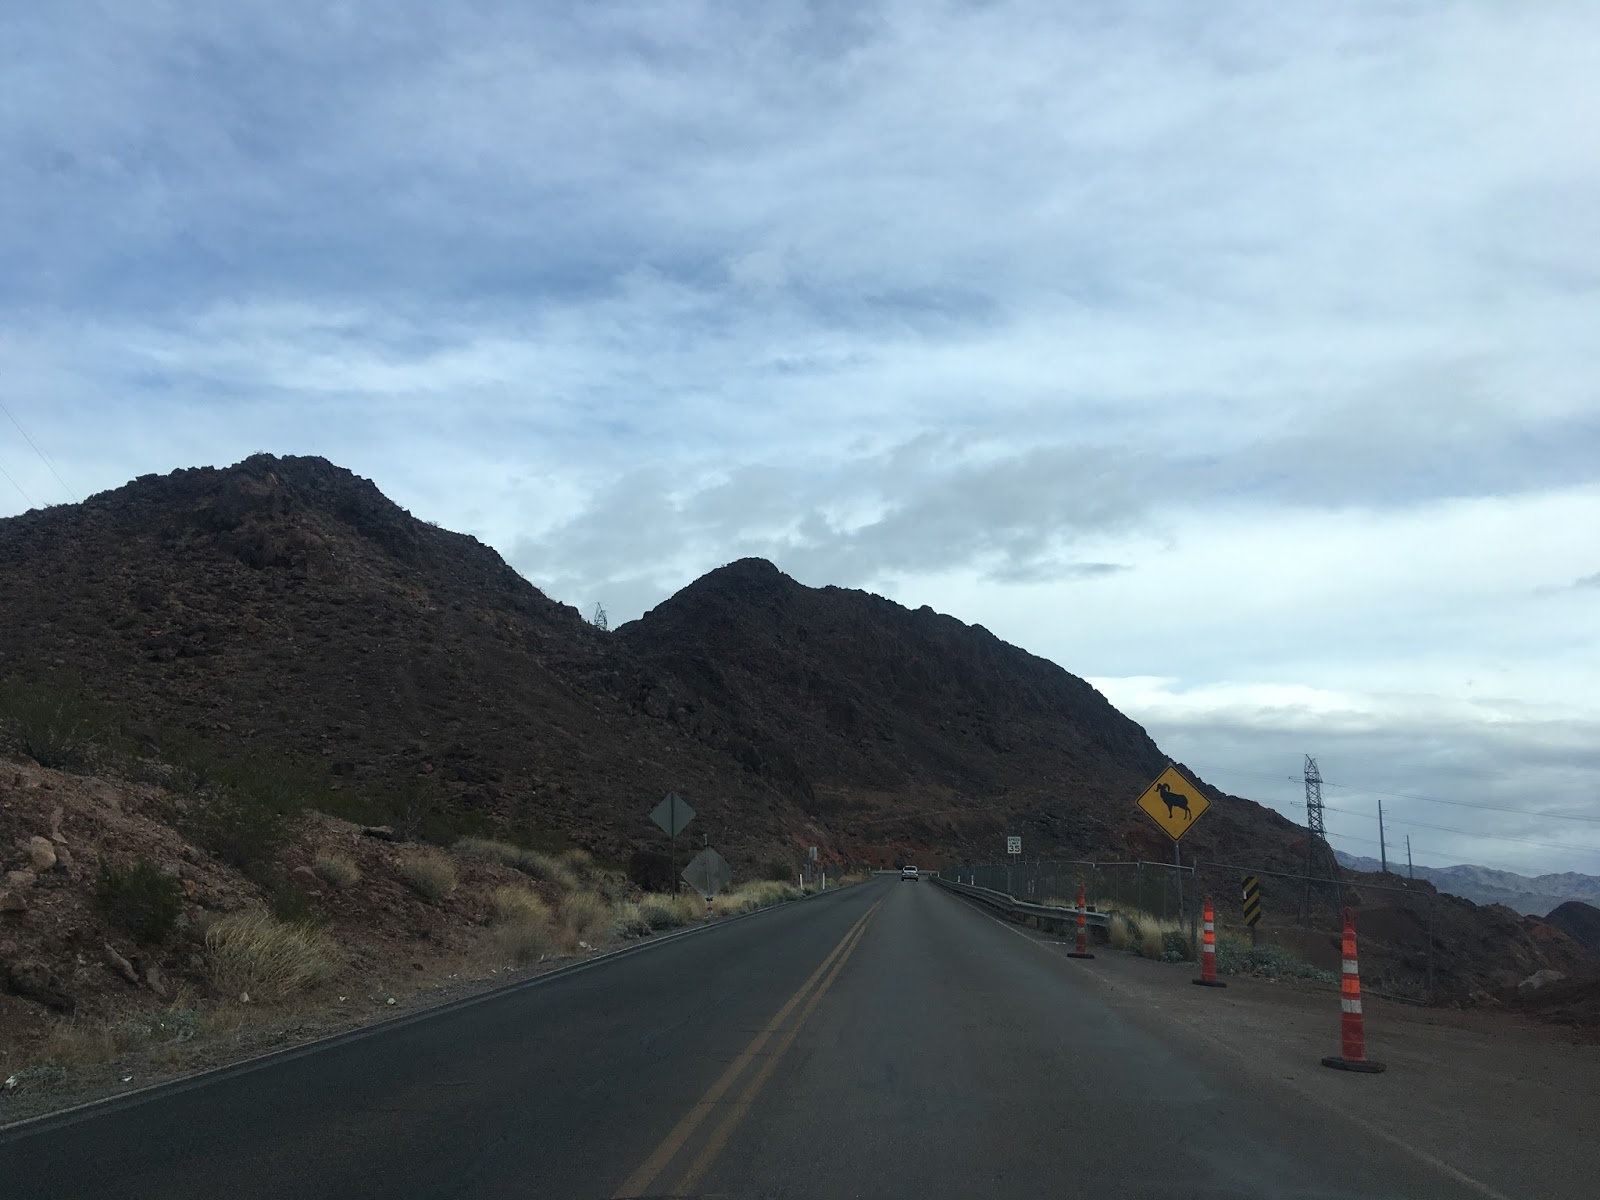 nv 172 is approximately only 1 4 miles long it ends at a bureau of reclamation security checkpoint for hoover dam access